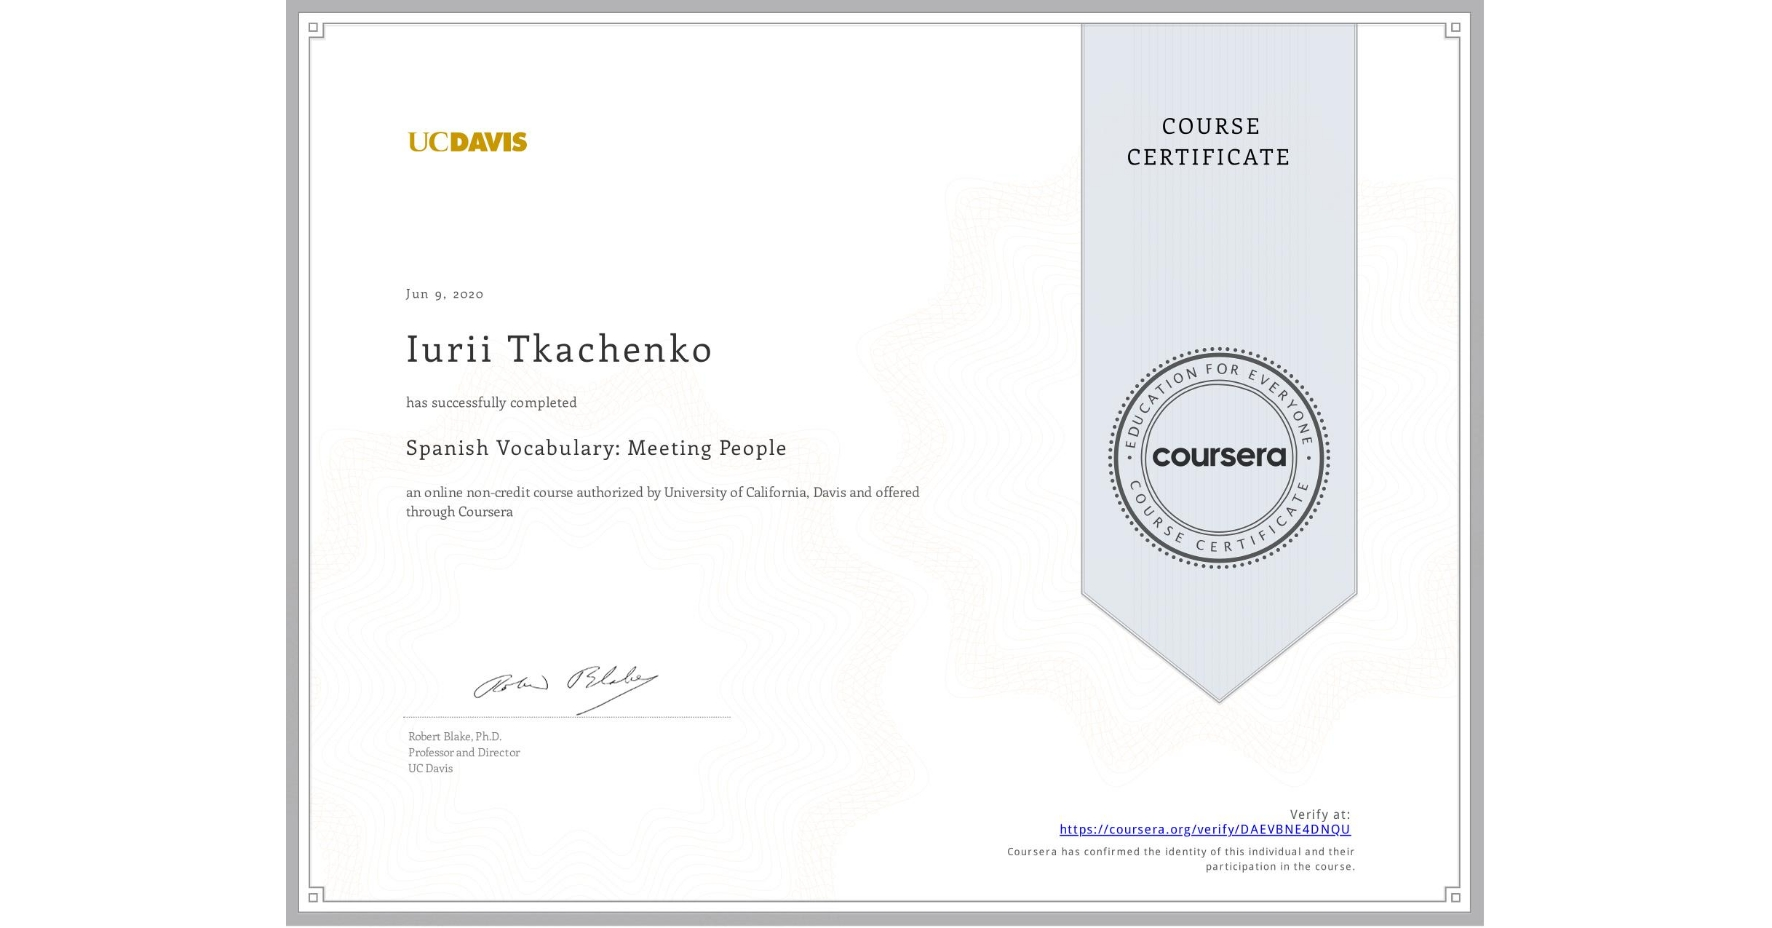 View certificate for Iurii Tkachenko, Spanish Vocabulary: Meeting People, an online non-credit course authorized by University of California, Davis and offered through Coursera